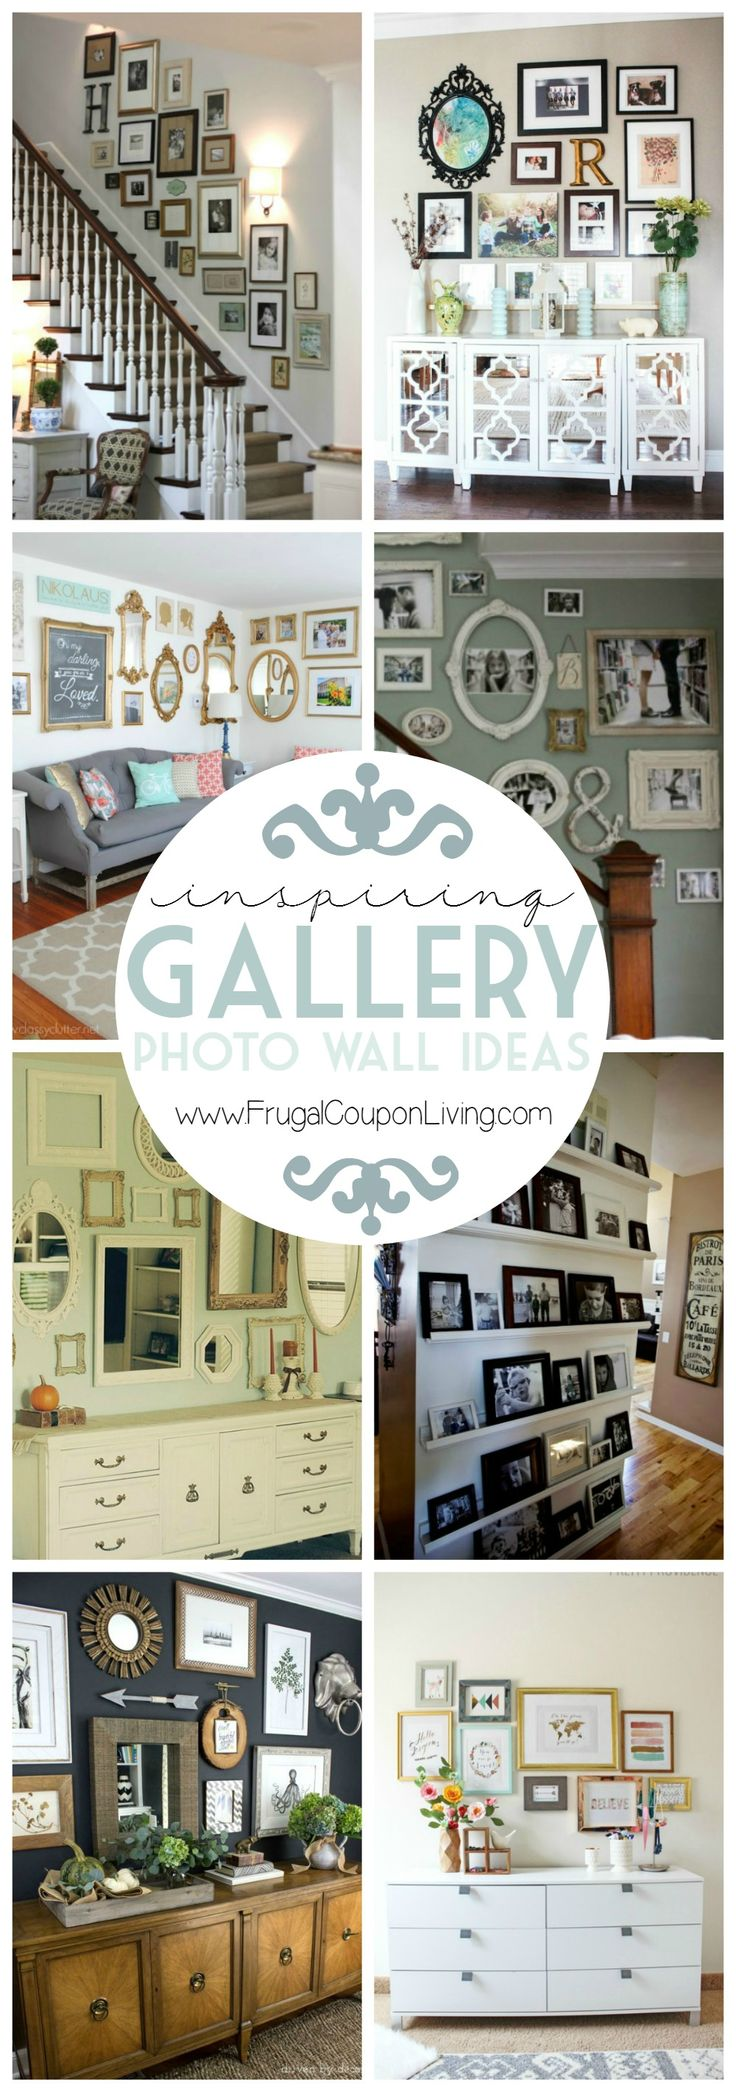 Best 25+ Family wall photos ideas on Pinterest | Photo wall design, Family  photos on wall and Wall picture design